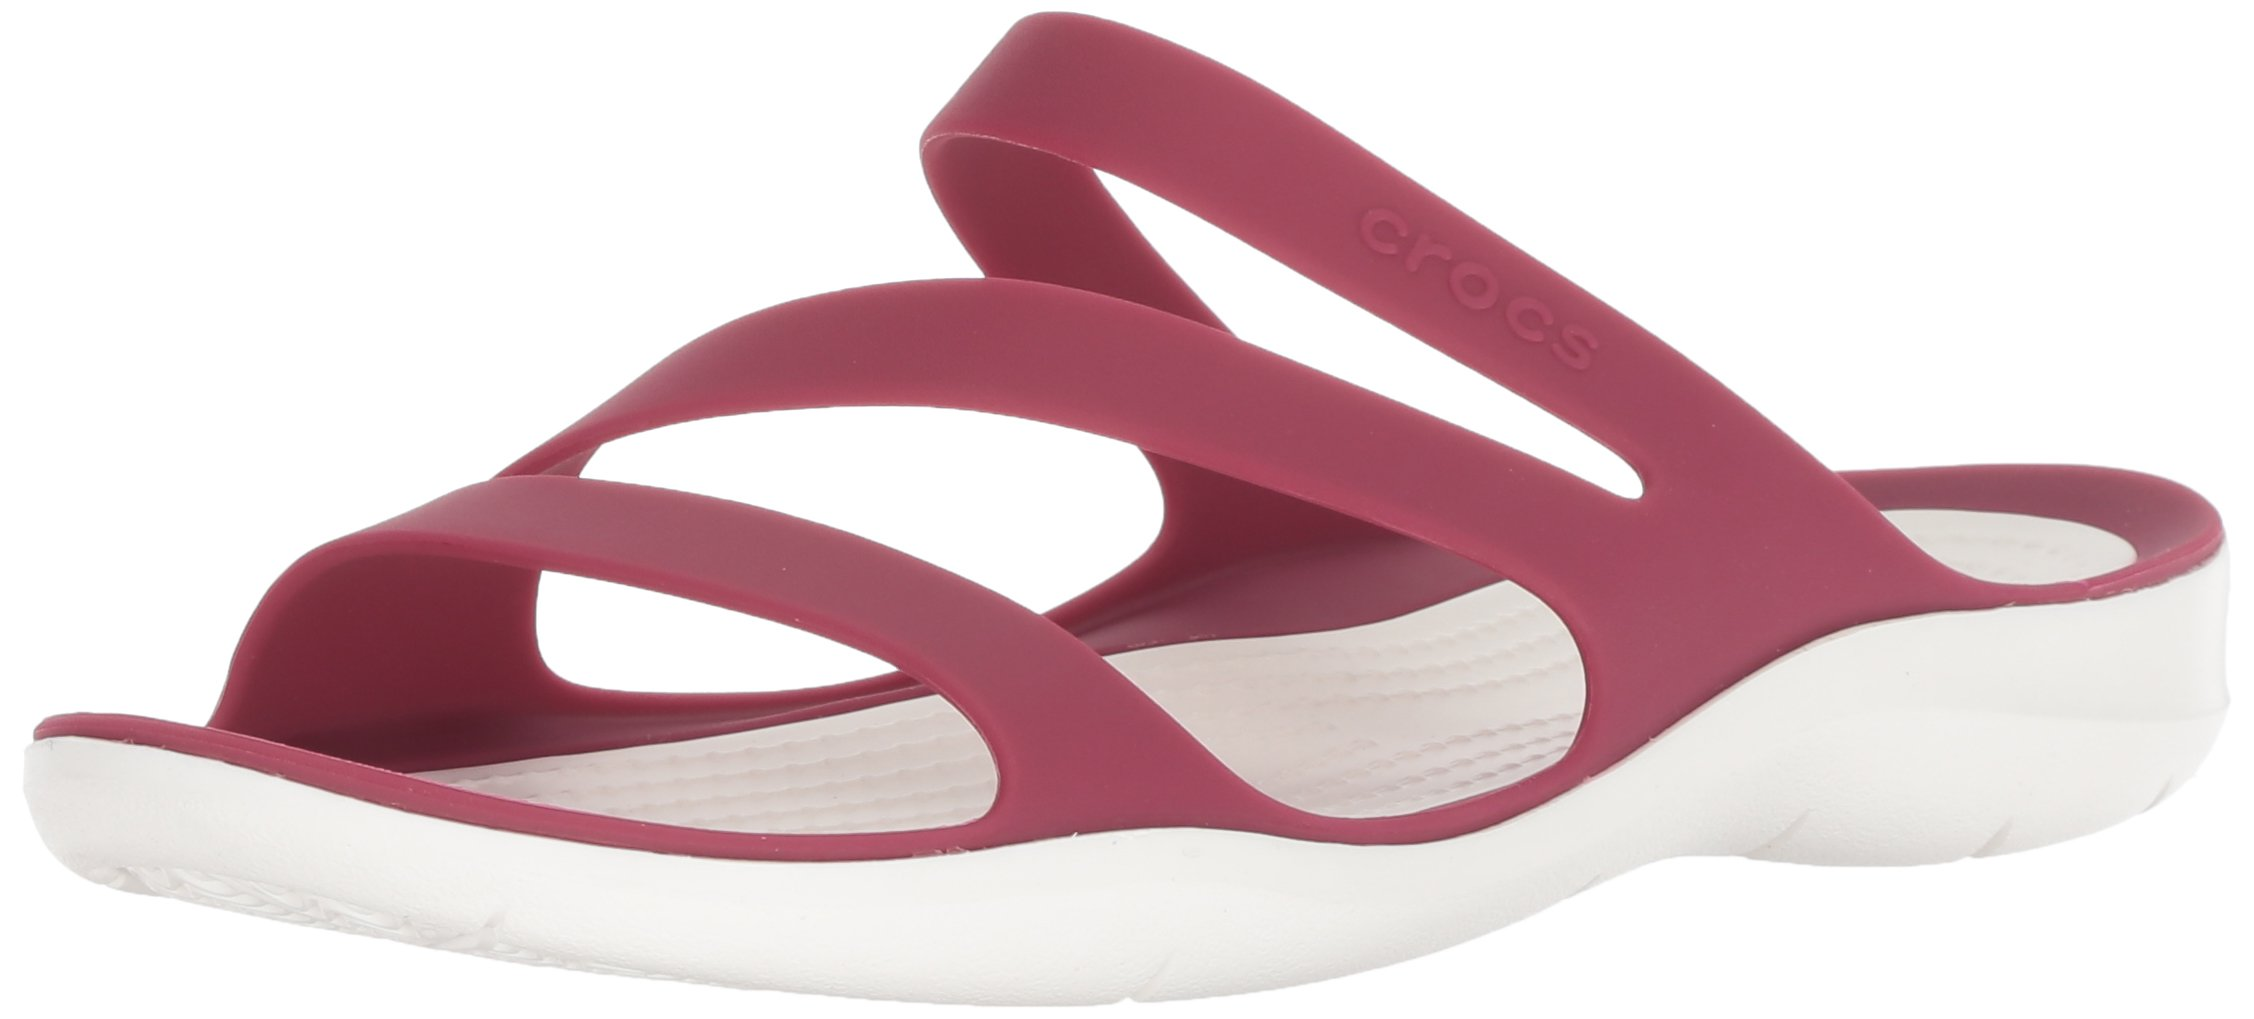 Crocs Women's Swiftwater Sandal W Sport, Pomegranate/White, 10 M US